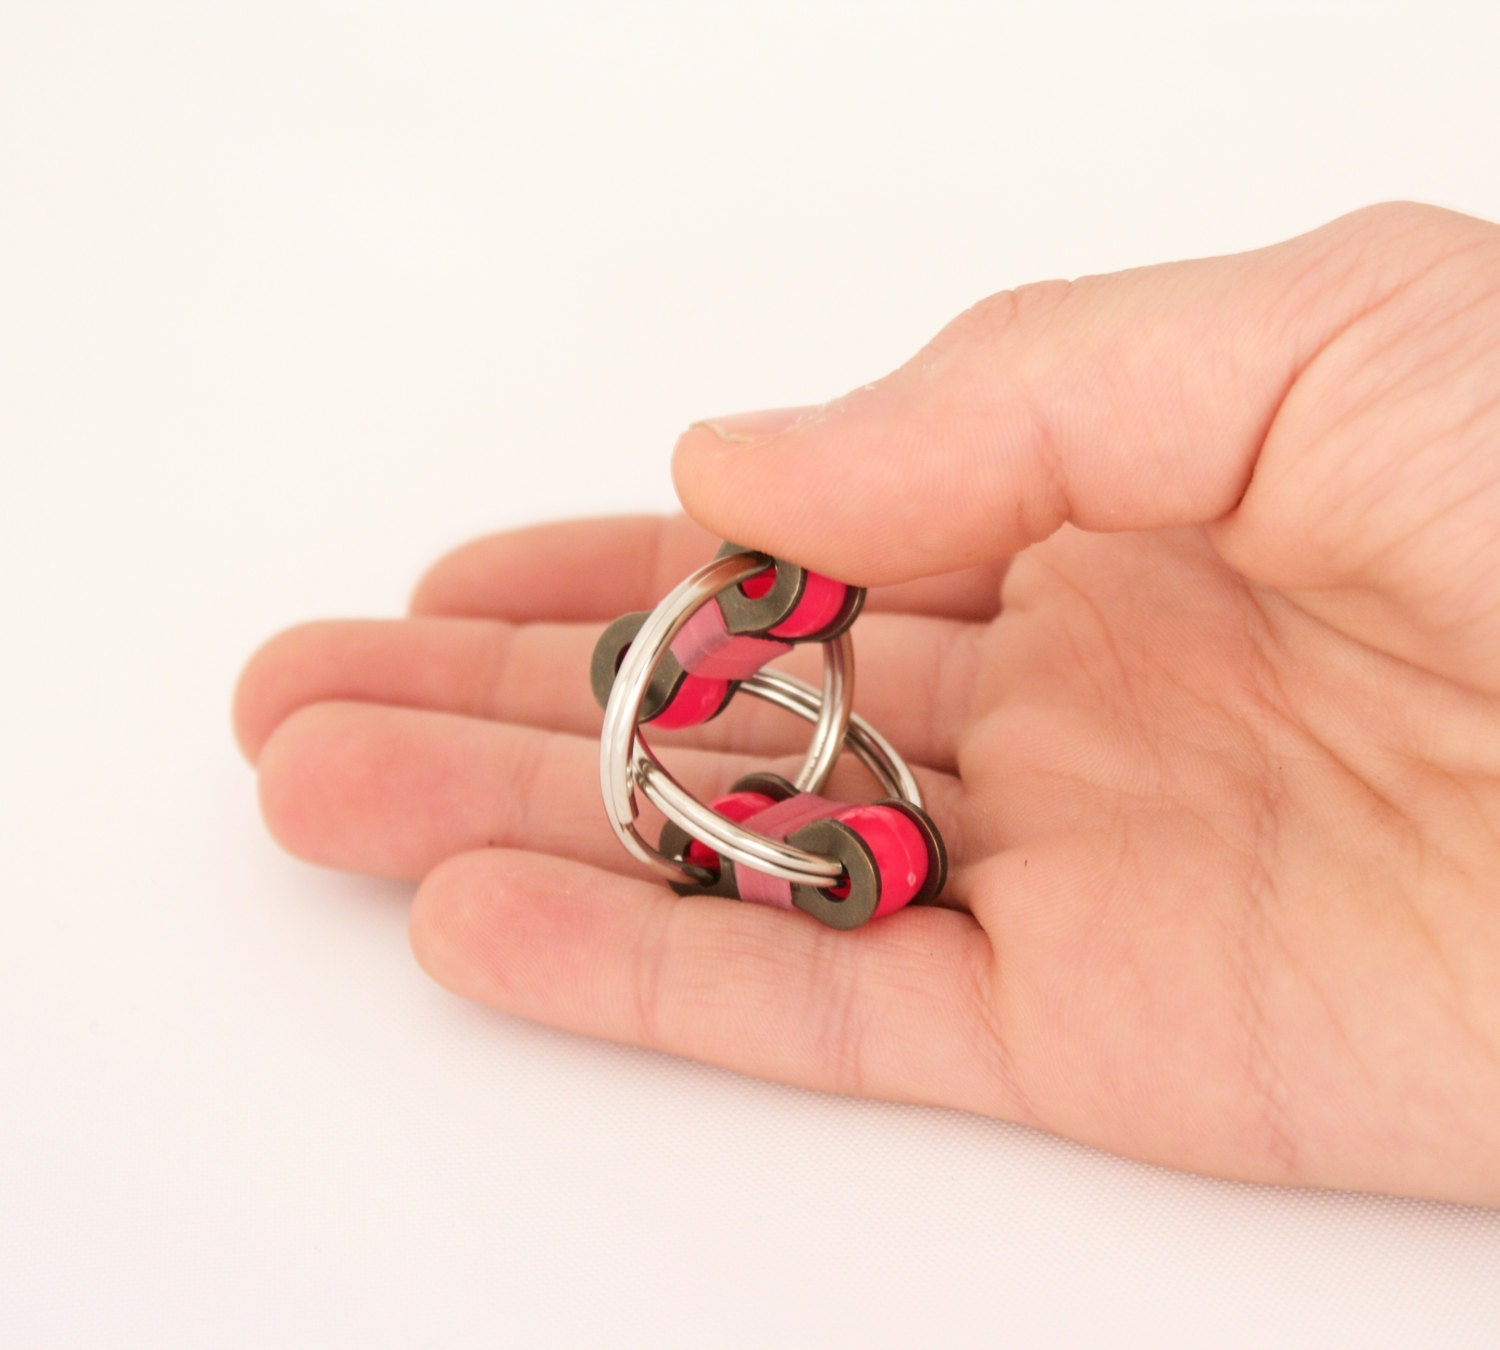 Fidget Toys For Adhd : Fidget toy for adhd sensory therapy stress reduction